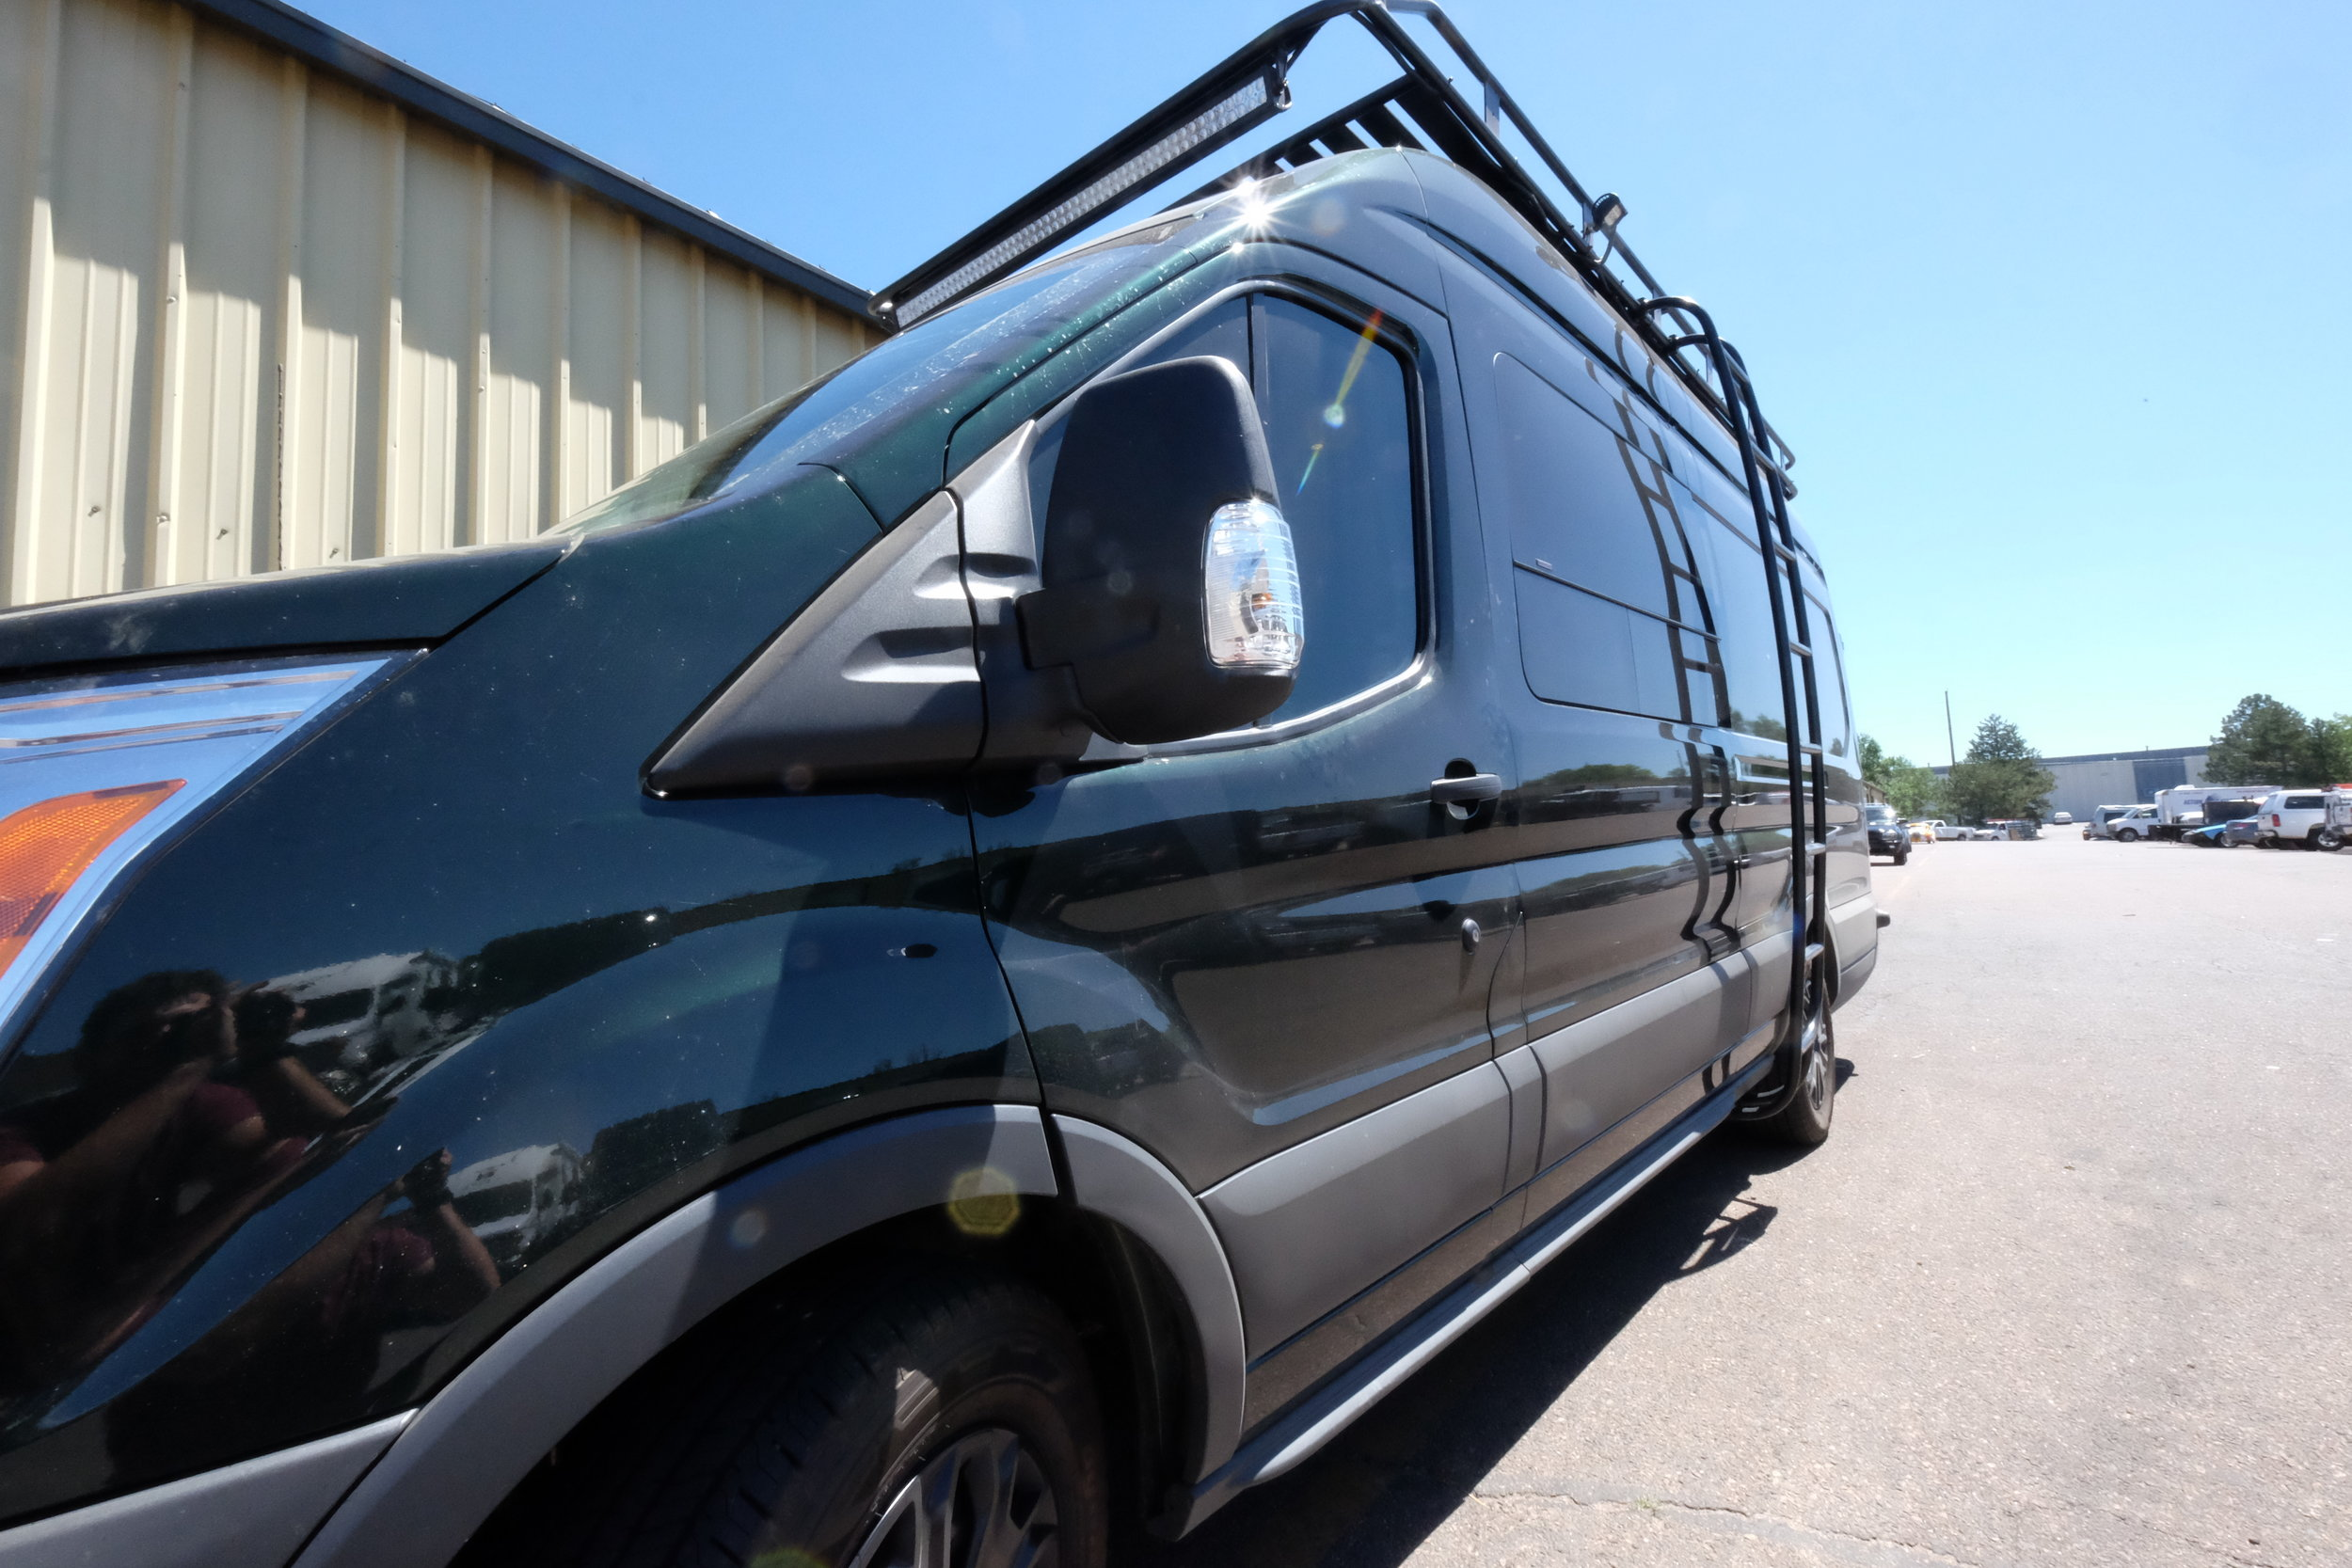 Dan's long wheel base/high roof transit was designed with long term travel and live-in capability in mind. Not only does it act the part, but with plenty of Aluminess goodies installed it looks tough doing it.